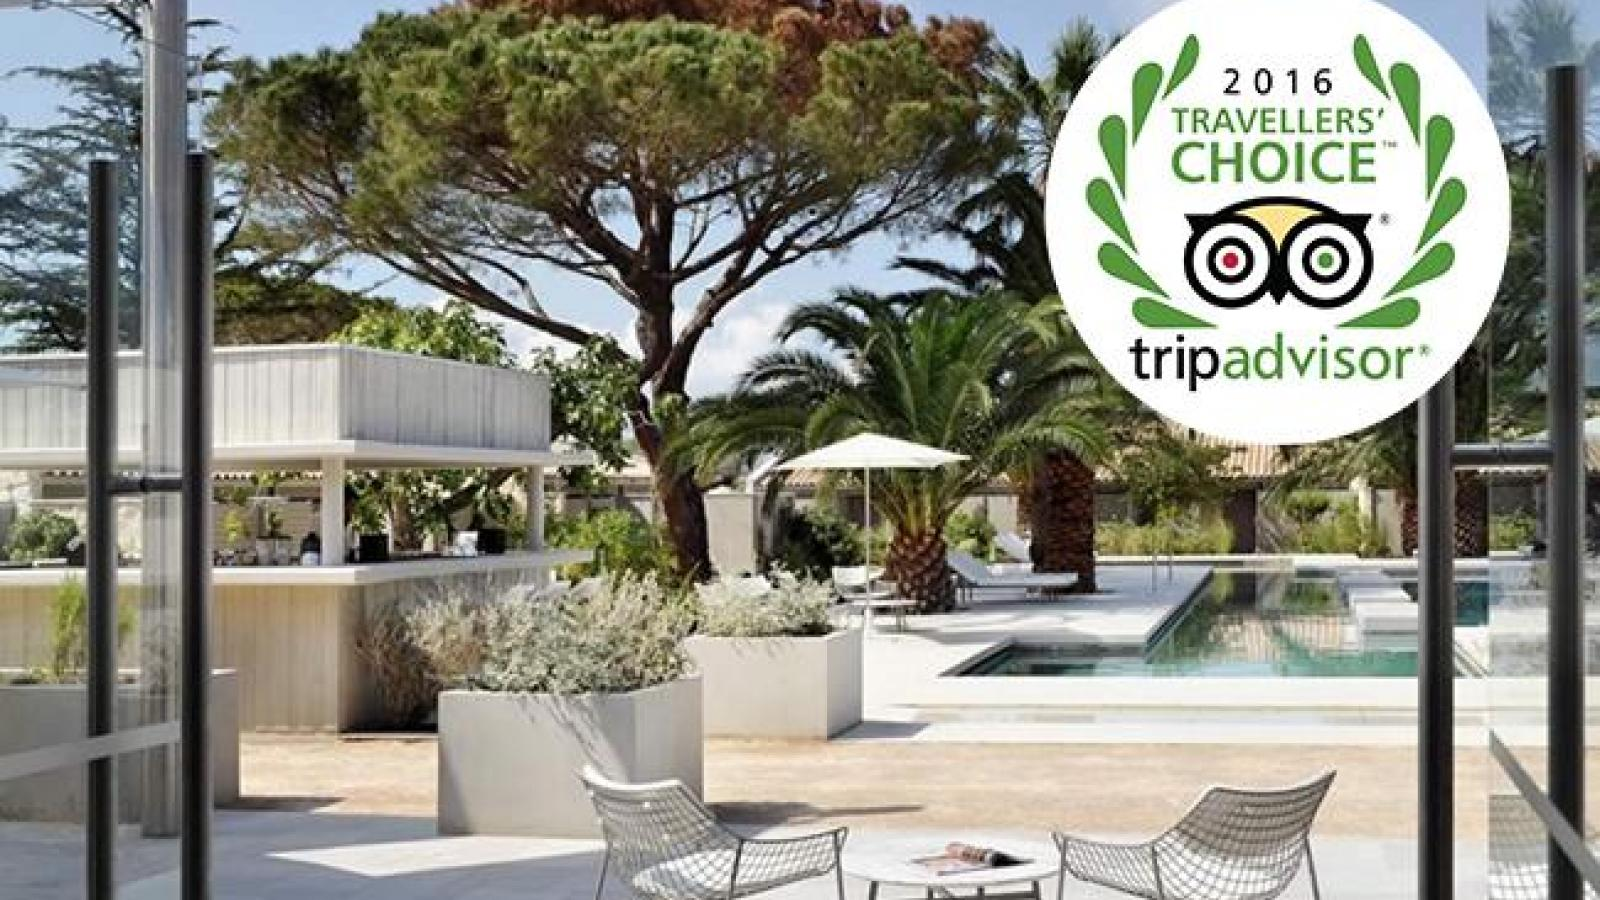 Sezz Saint-Tropez, a luxury Var setting